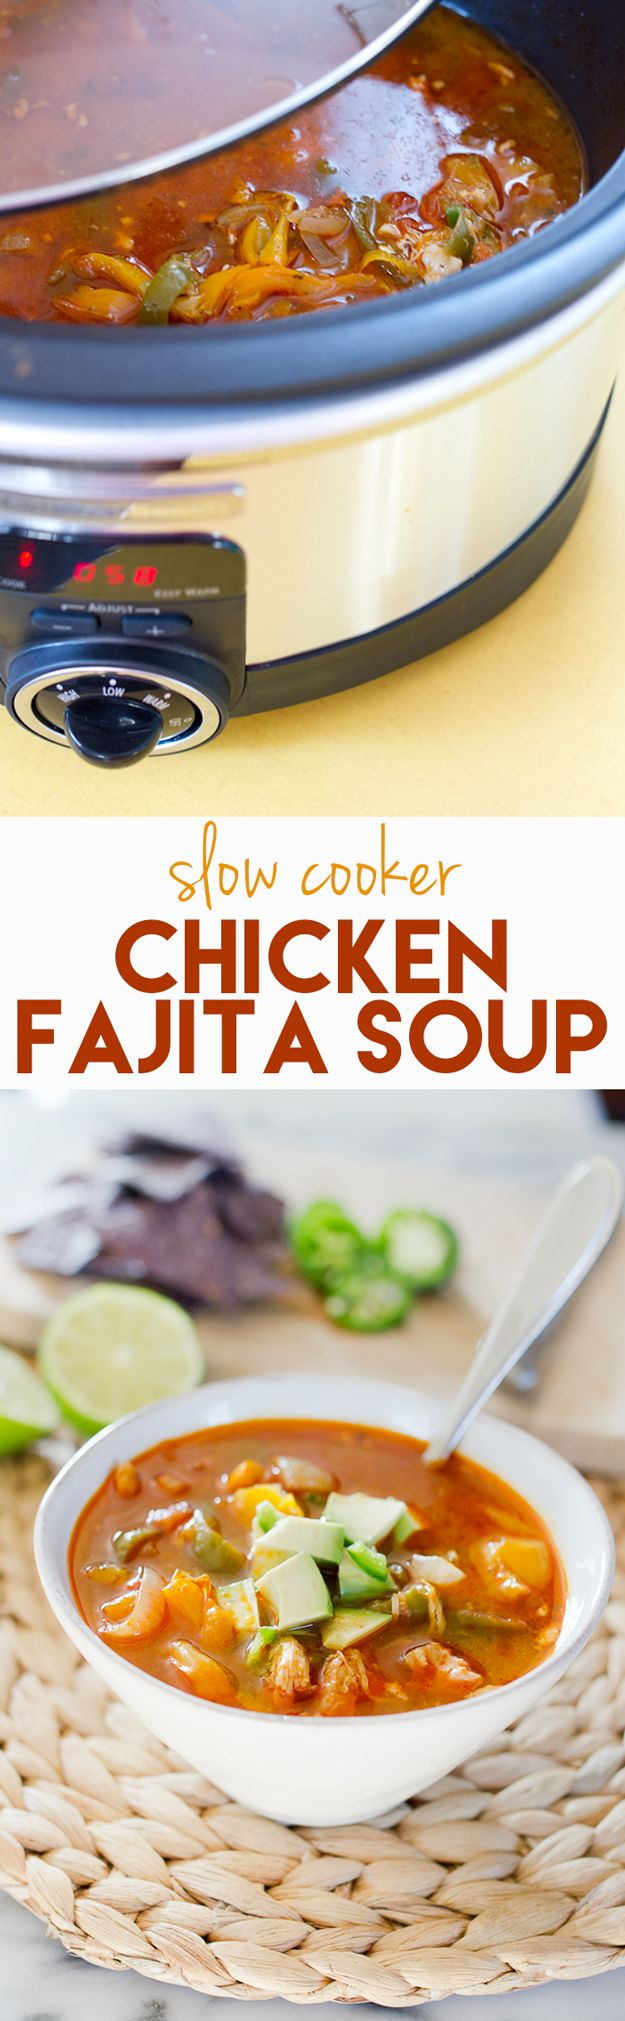 Craving Mexican? Simply toss all the ingredients for fajitas in your slow cooker and a few hours later you'll have a comforting soup that's packed with flavor and a hint of spice. This fajita soup is gluten-free, grain-free and paleo.